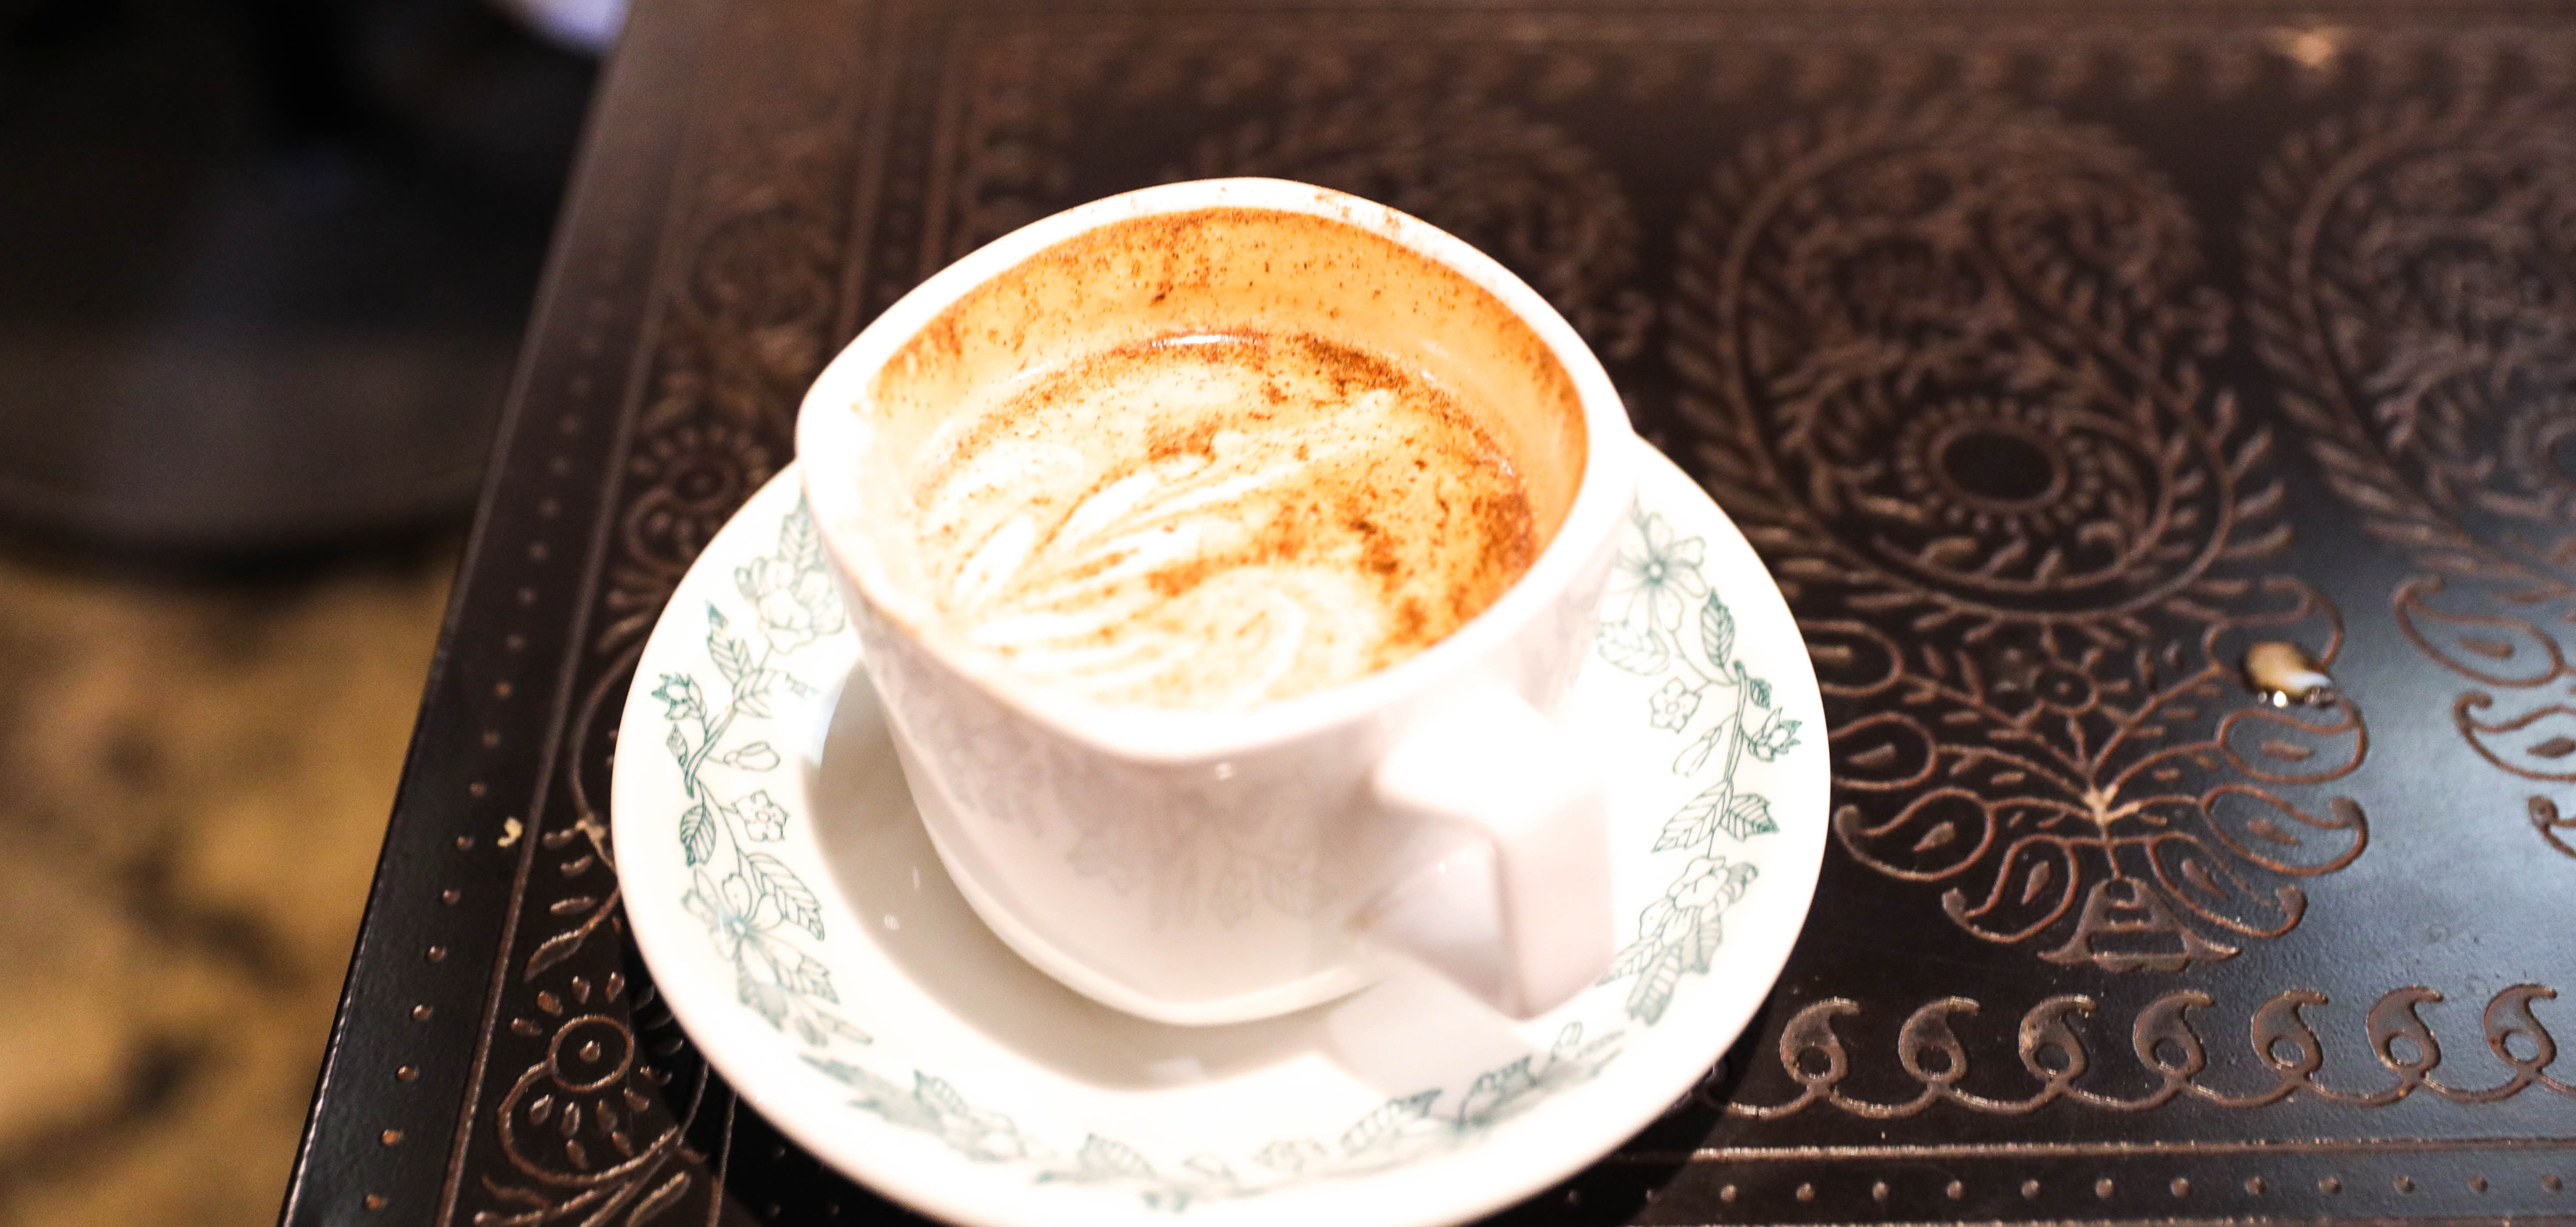 A chai latte at Coffee House on Cherry Street in Tulsa, Oklahoma